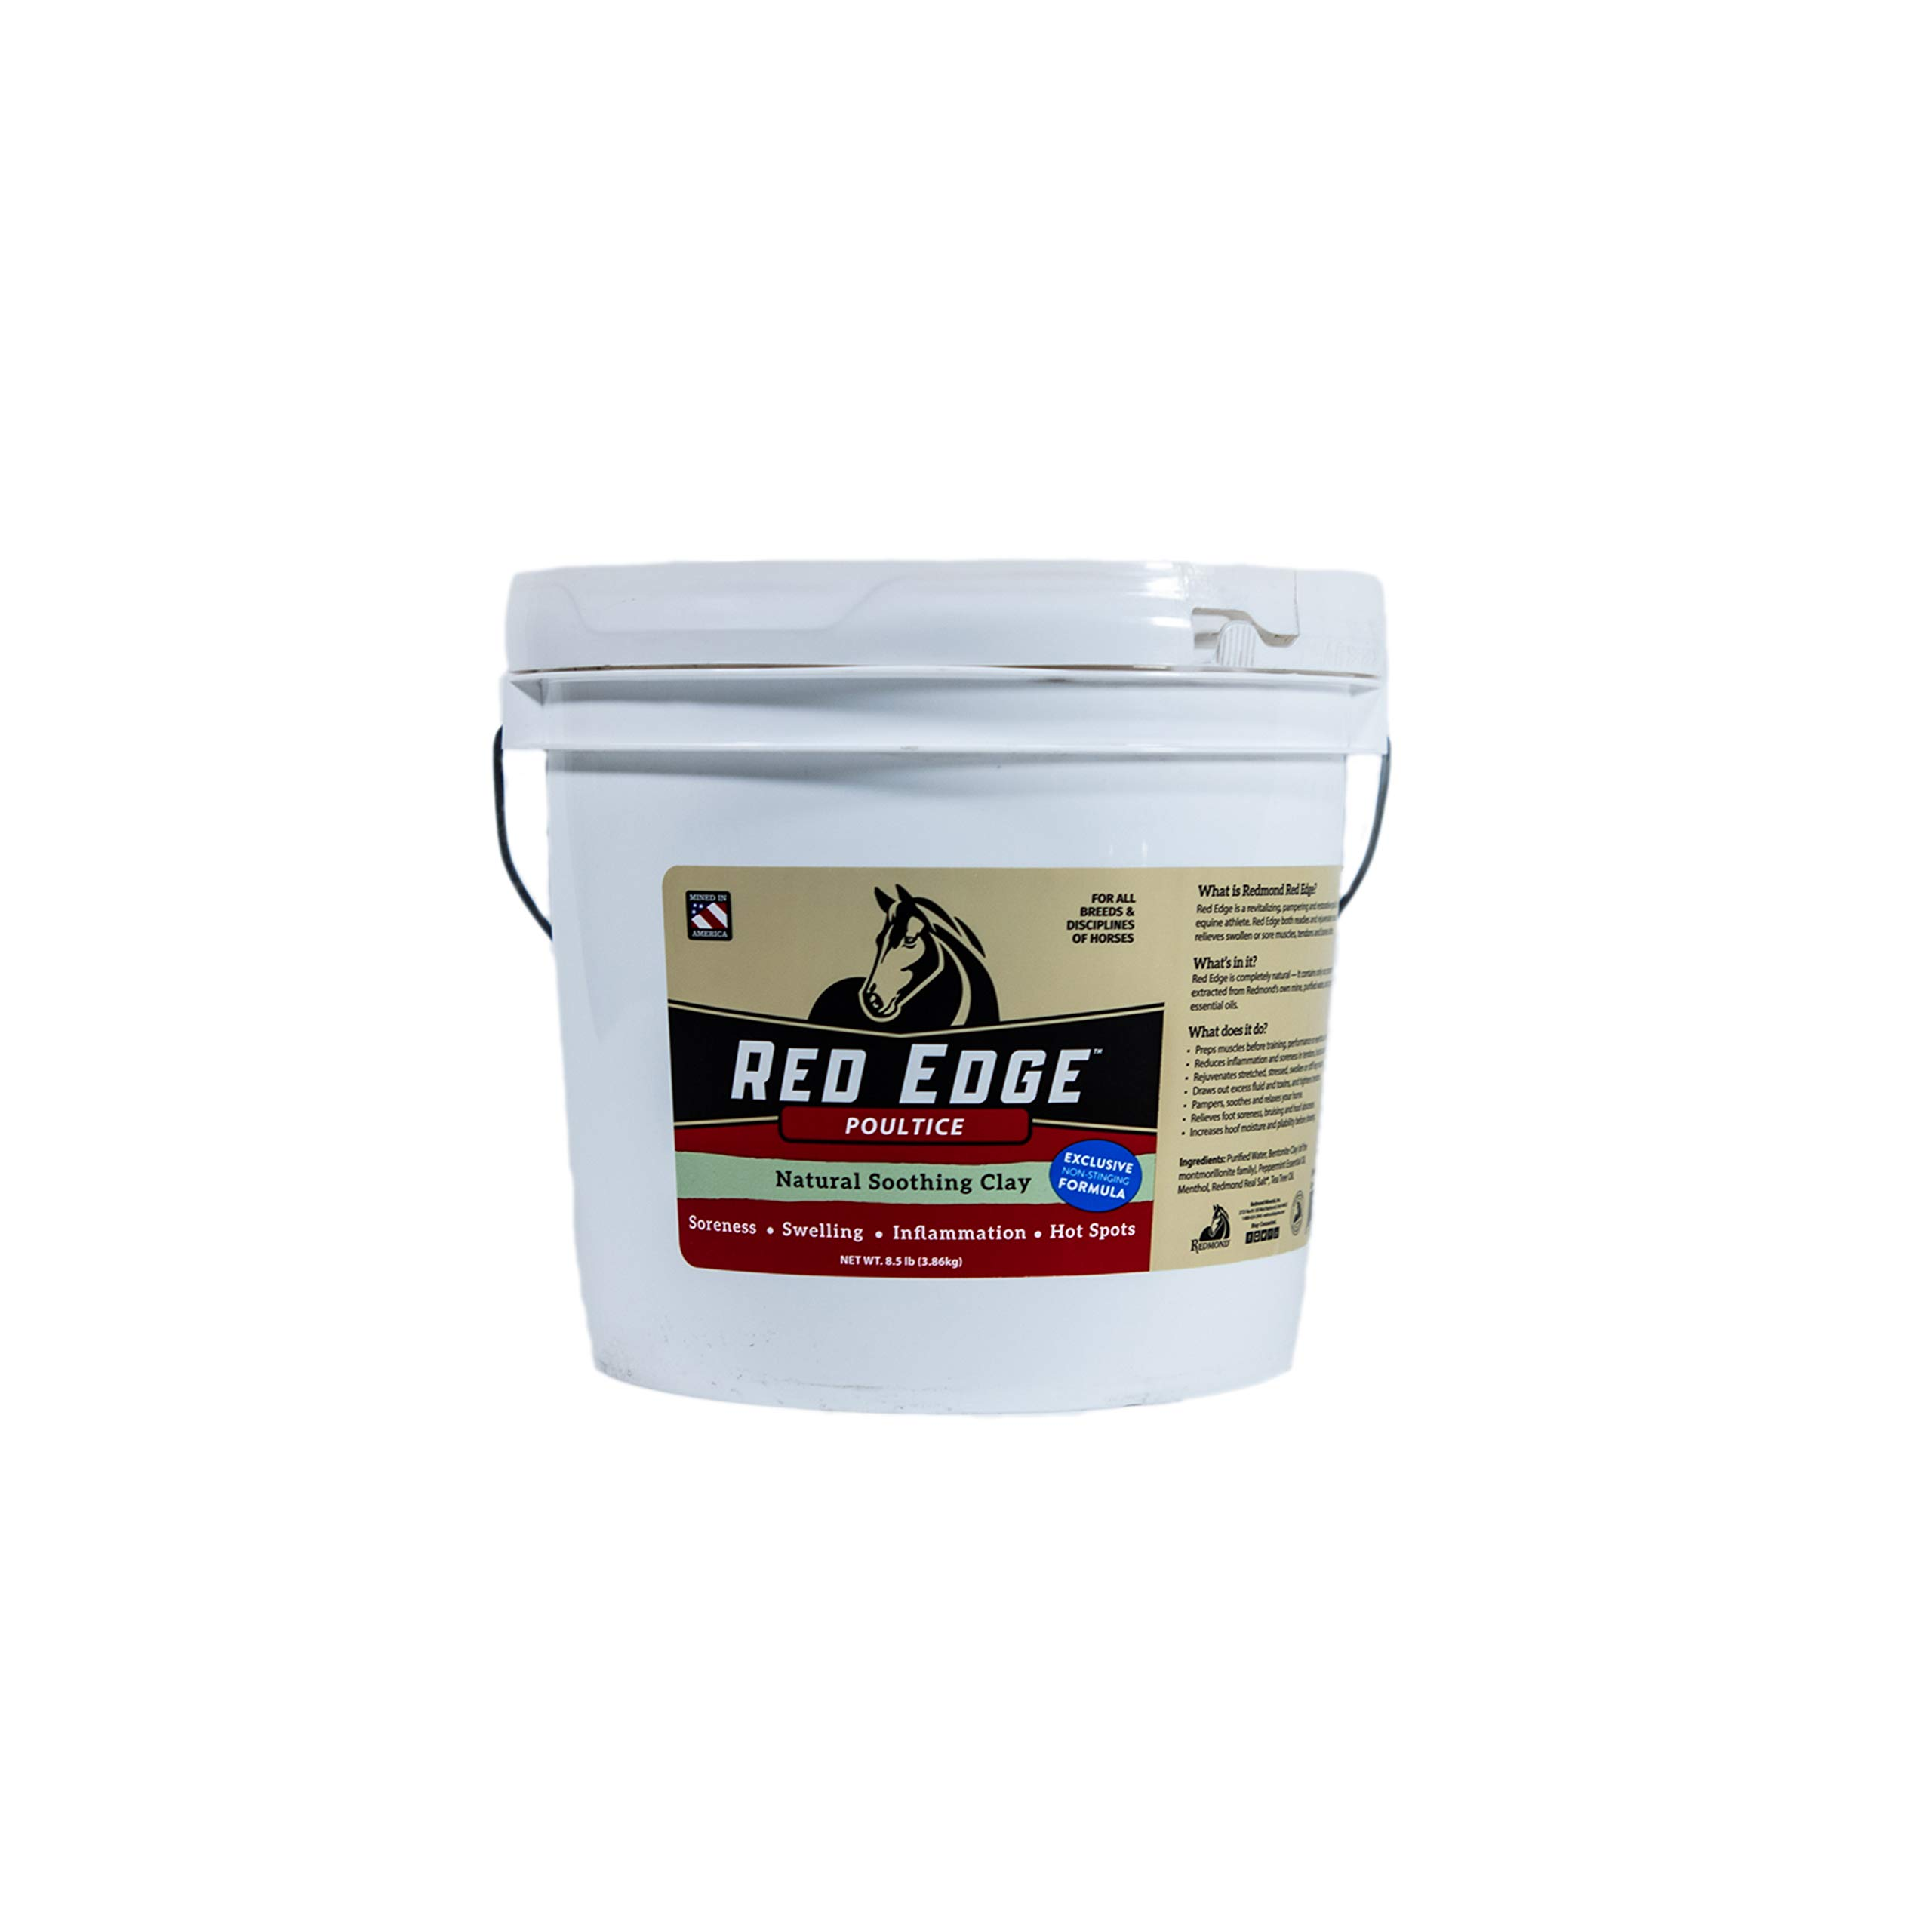 REDMOND Red Edge Equine Poultice, Natural Soothing Clay for All Horse Breeds, 8.5lb Bucket by REDMOND